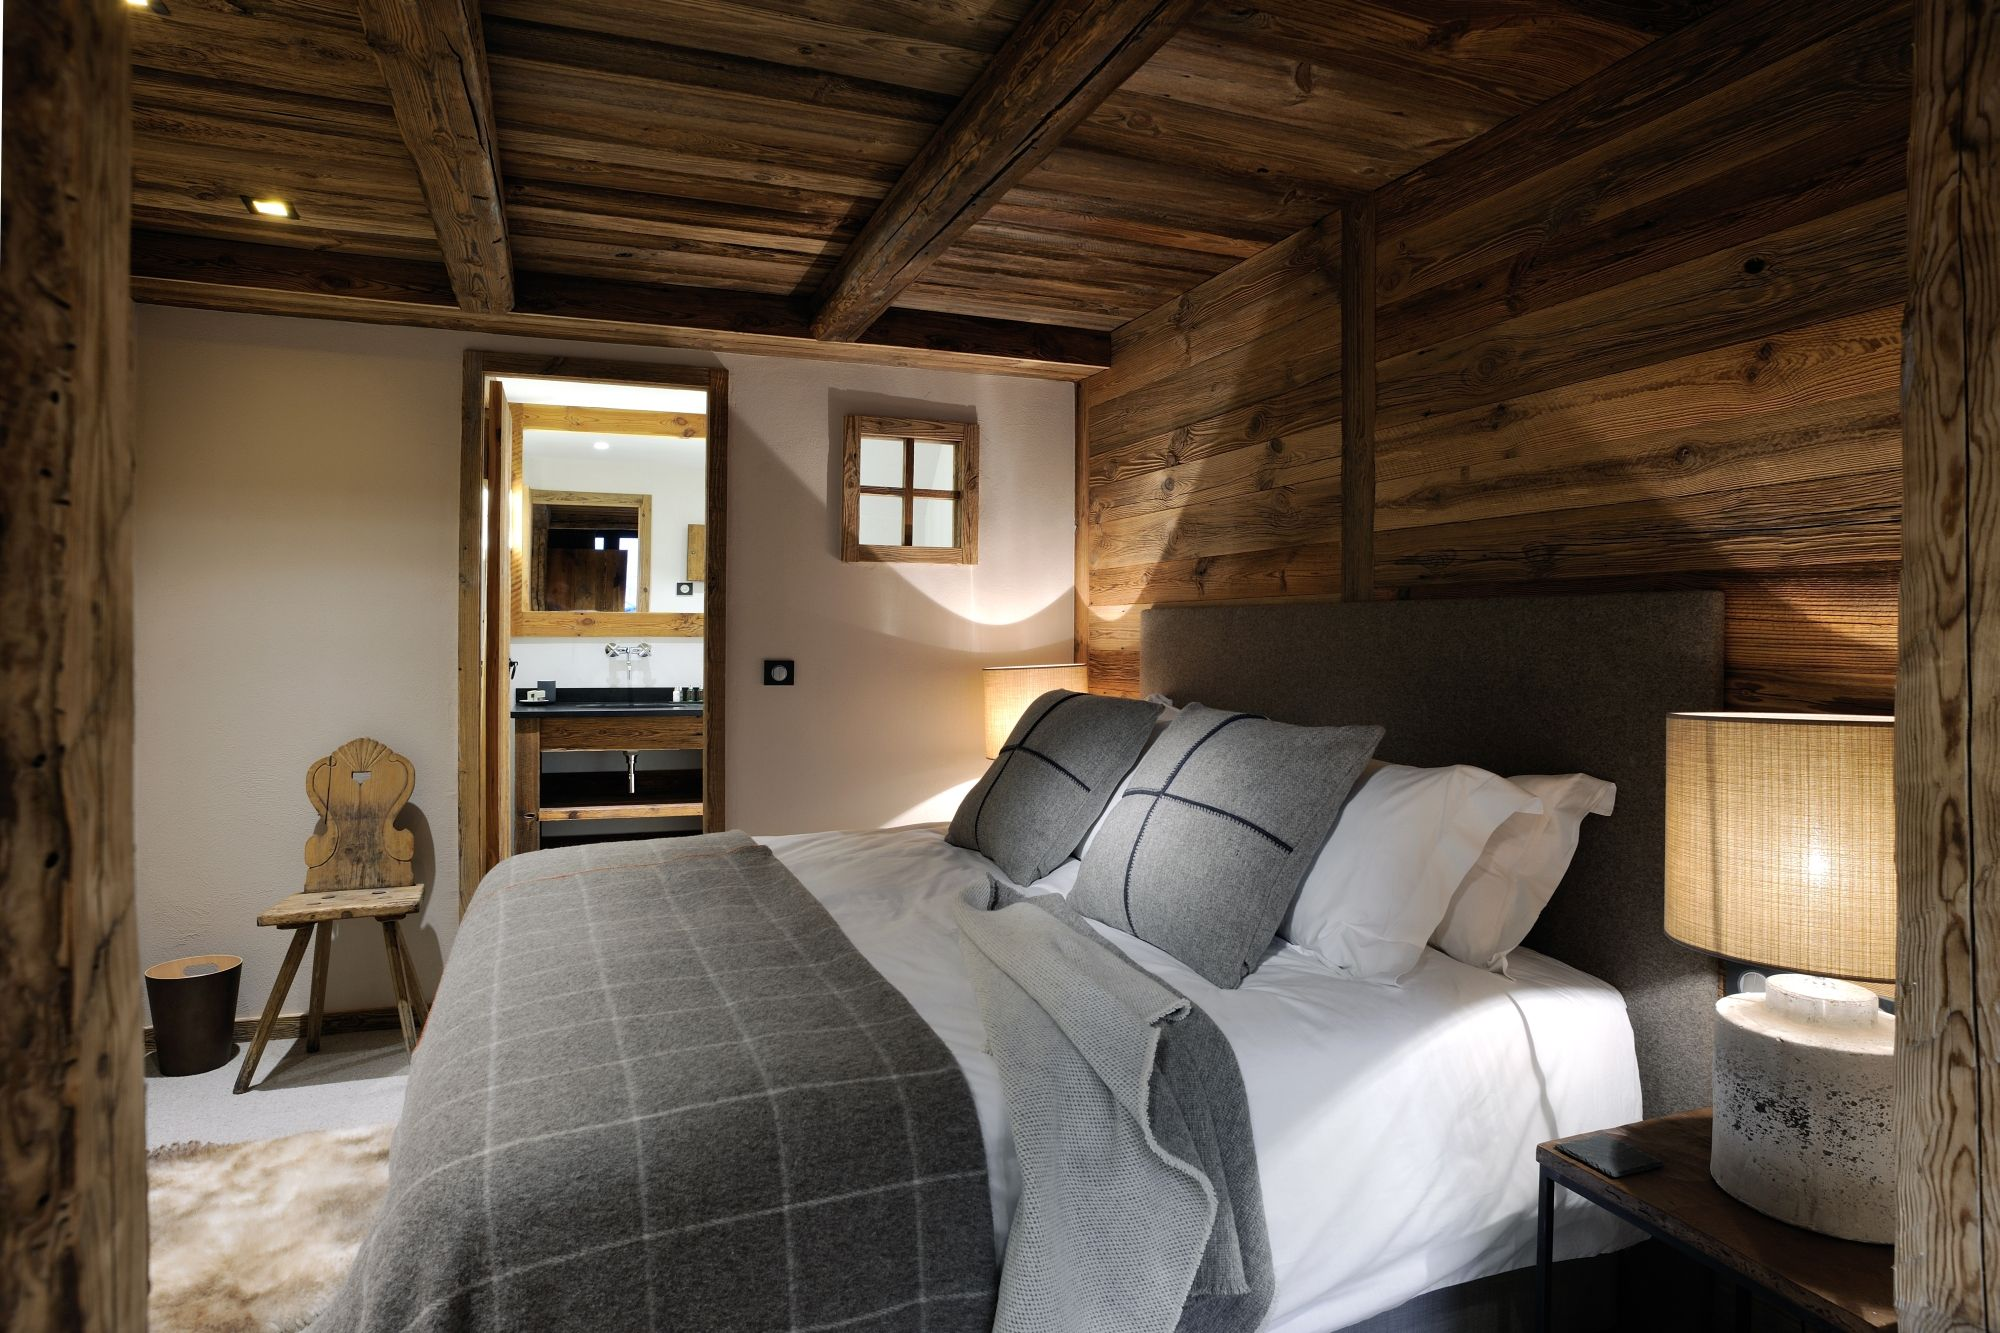 Chalet The Ecurie Home, Chalet interior, Chalet style